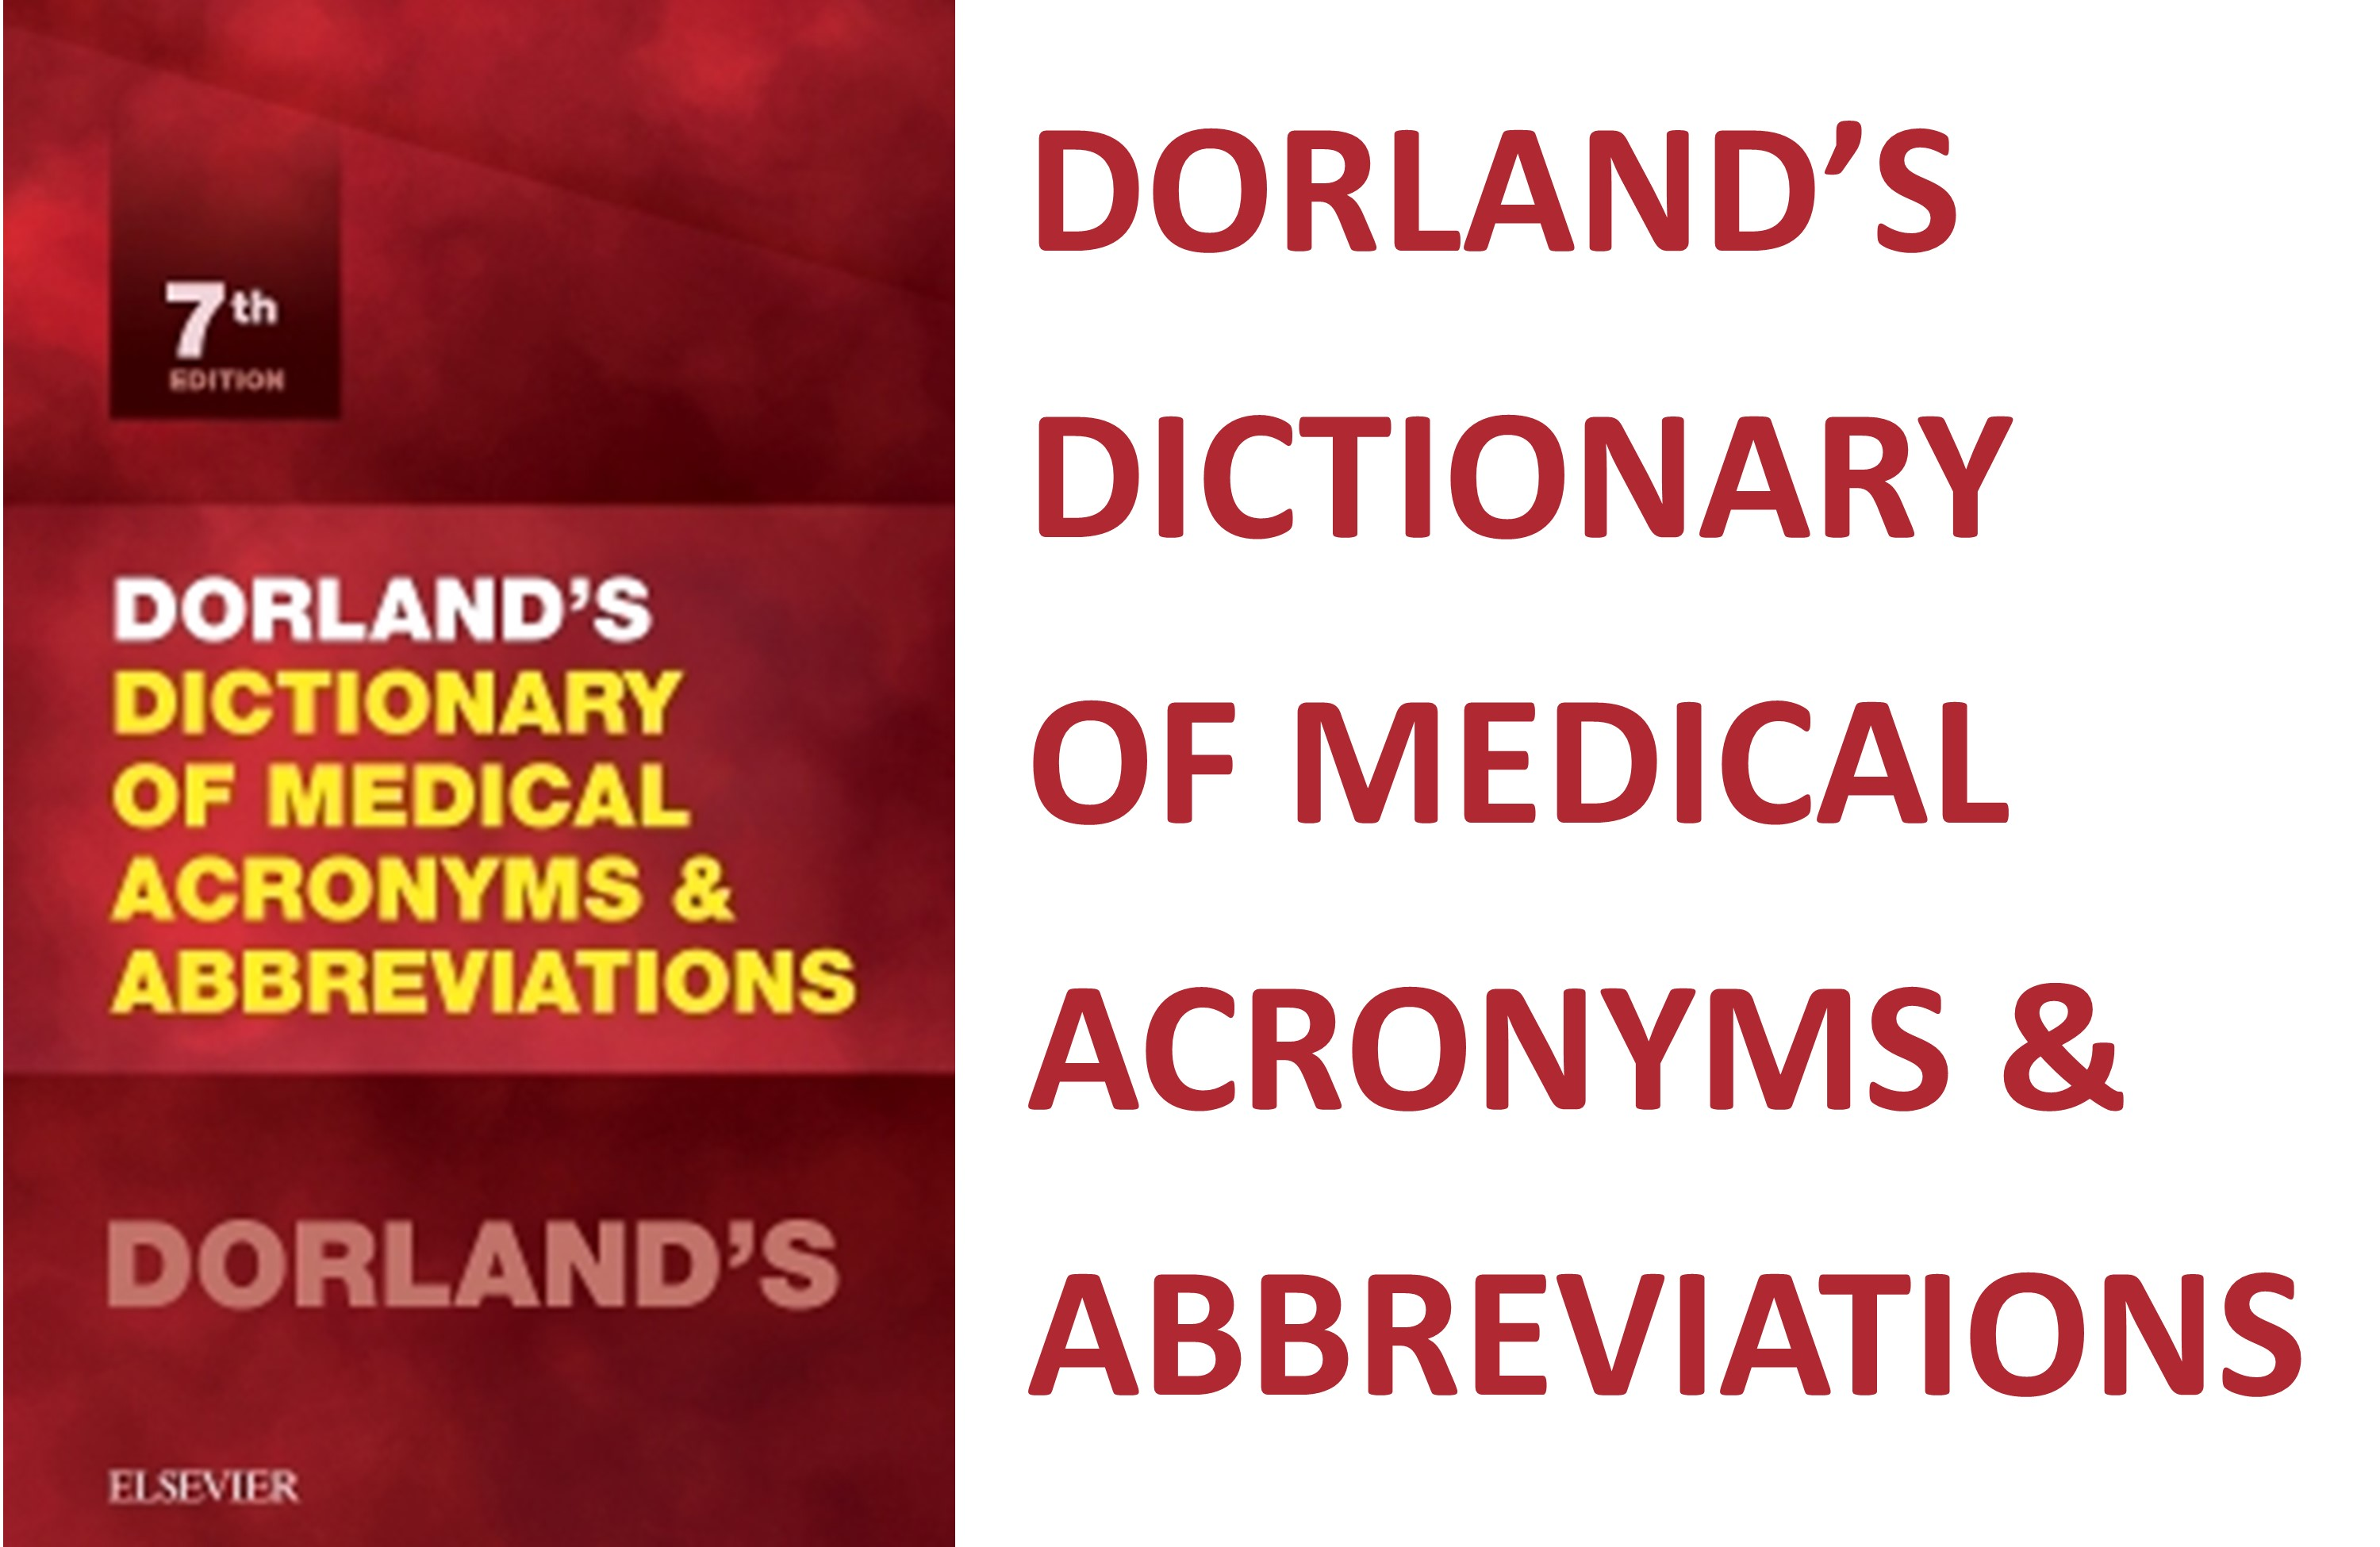 Dorland's Dictionary of Medical Acronyms & Abbreviations